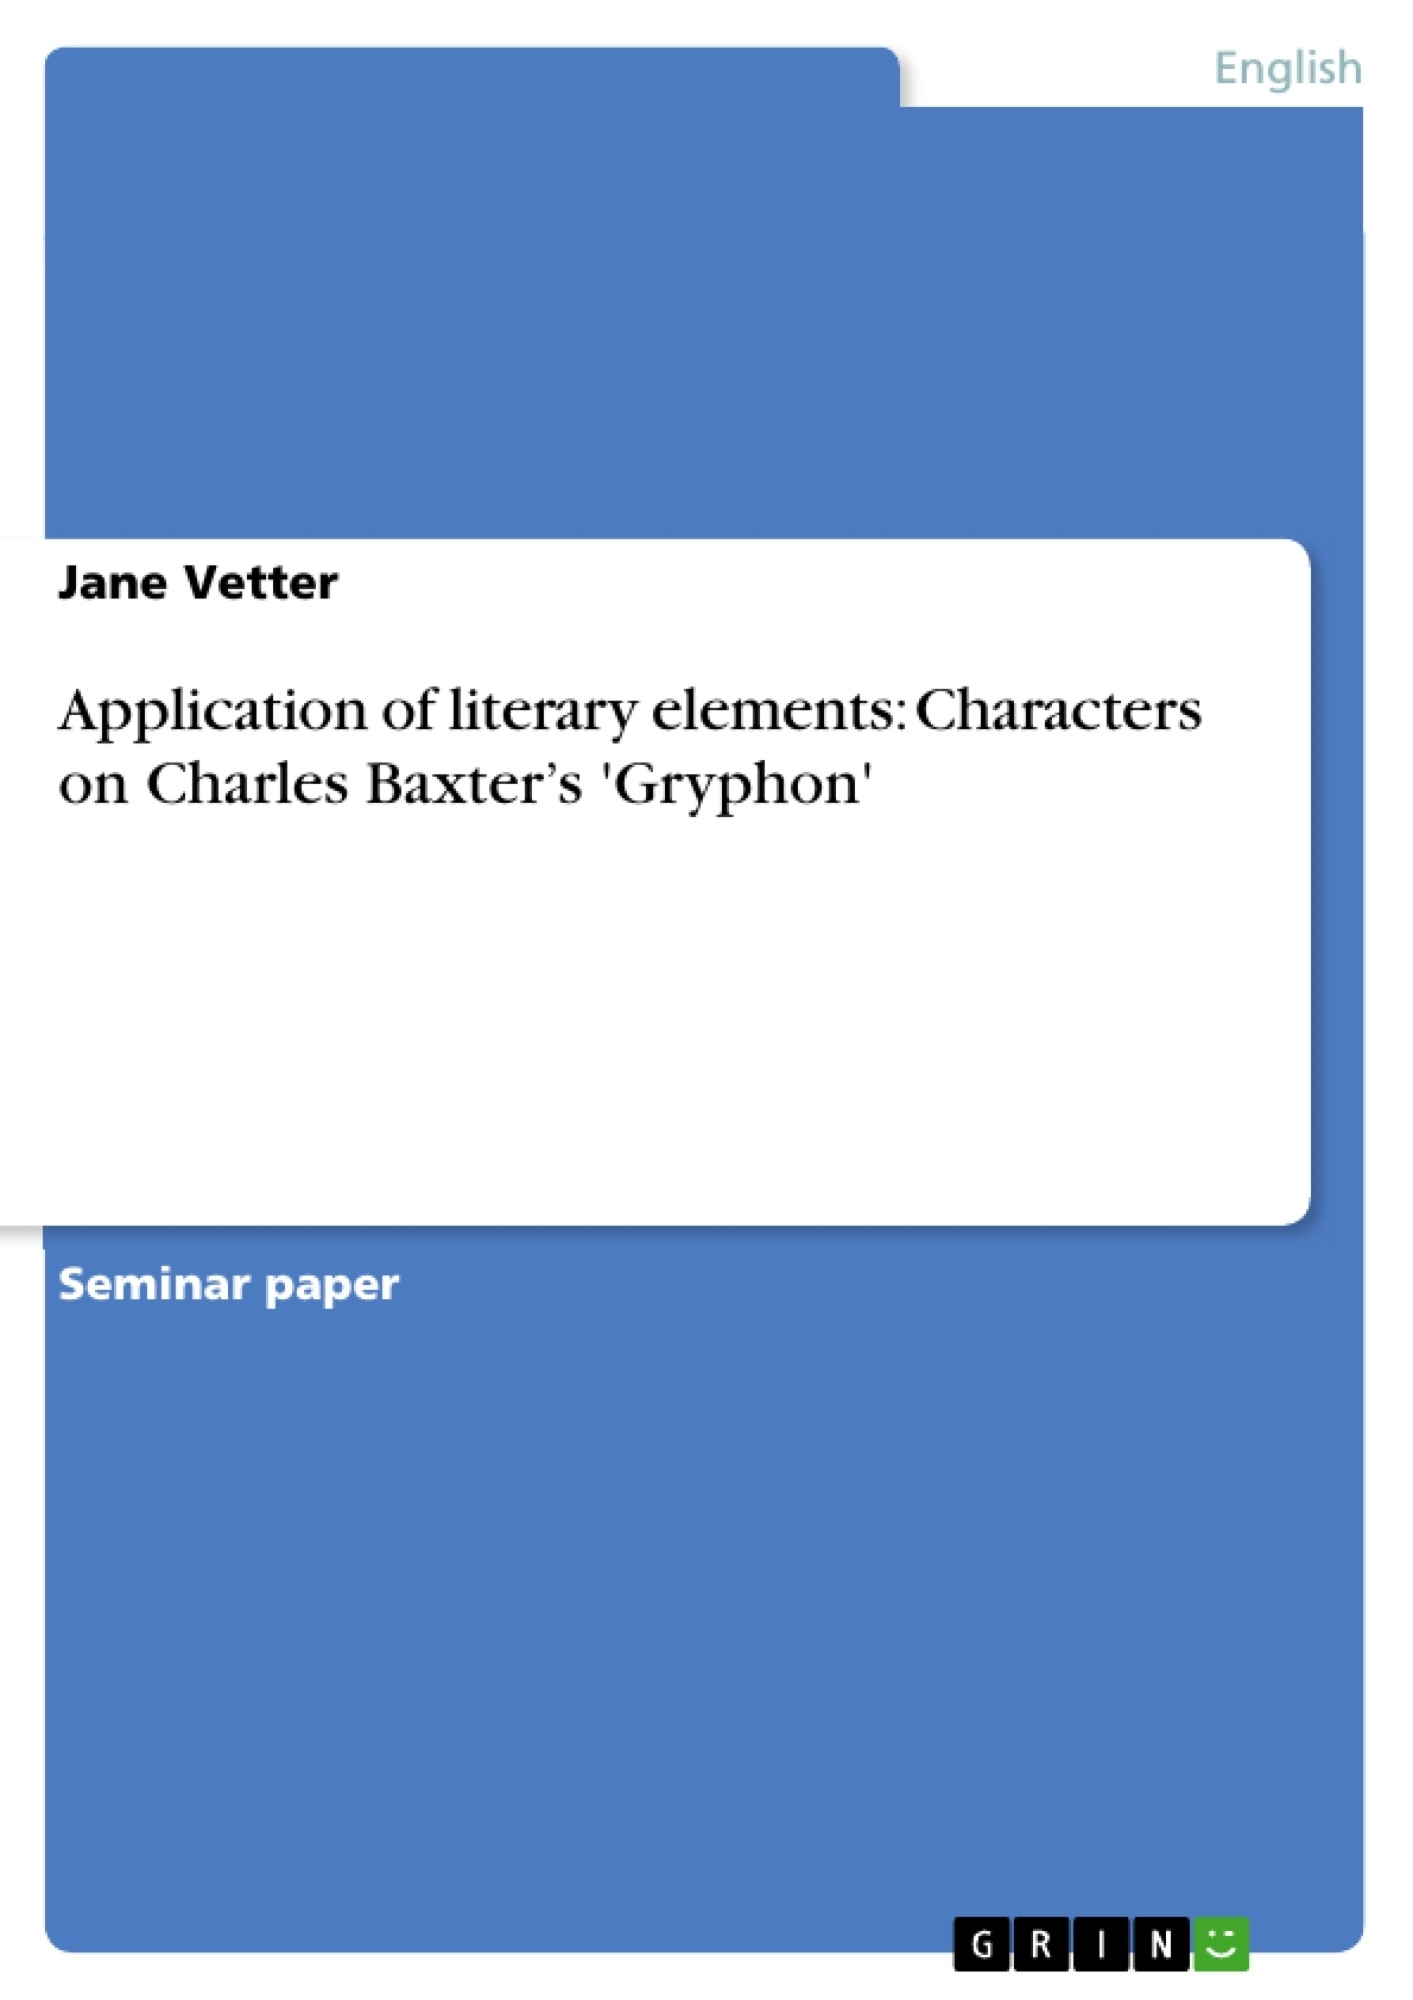 an analysis of gryphon by charles baxter Charles baxter's gift for the short story is manifested in gryphon, a compilation of stories selected from four earlier collections, joined by seven previously.